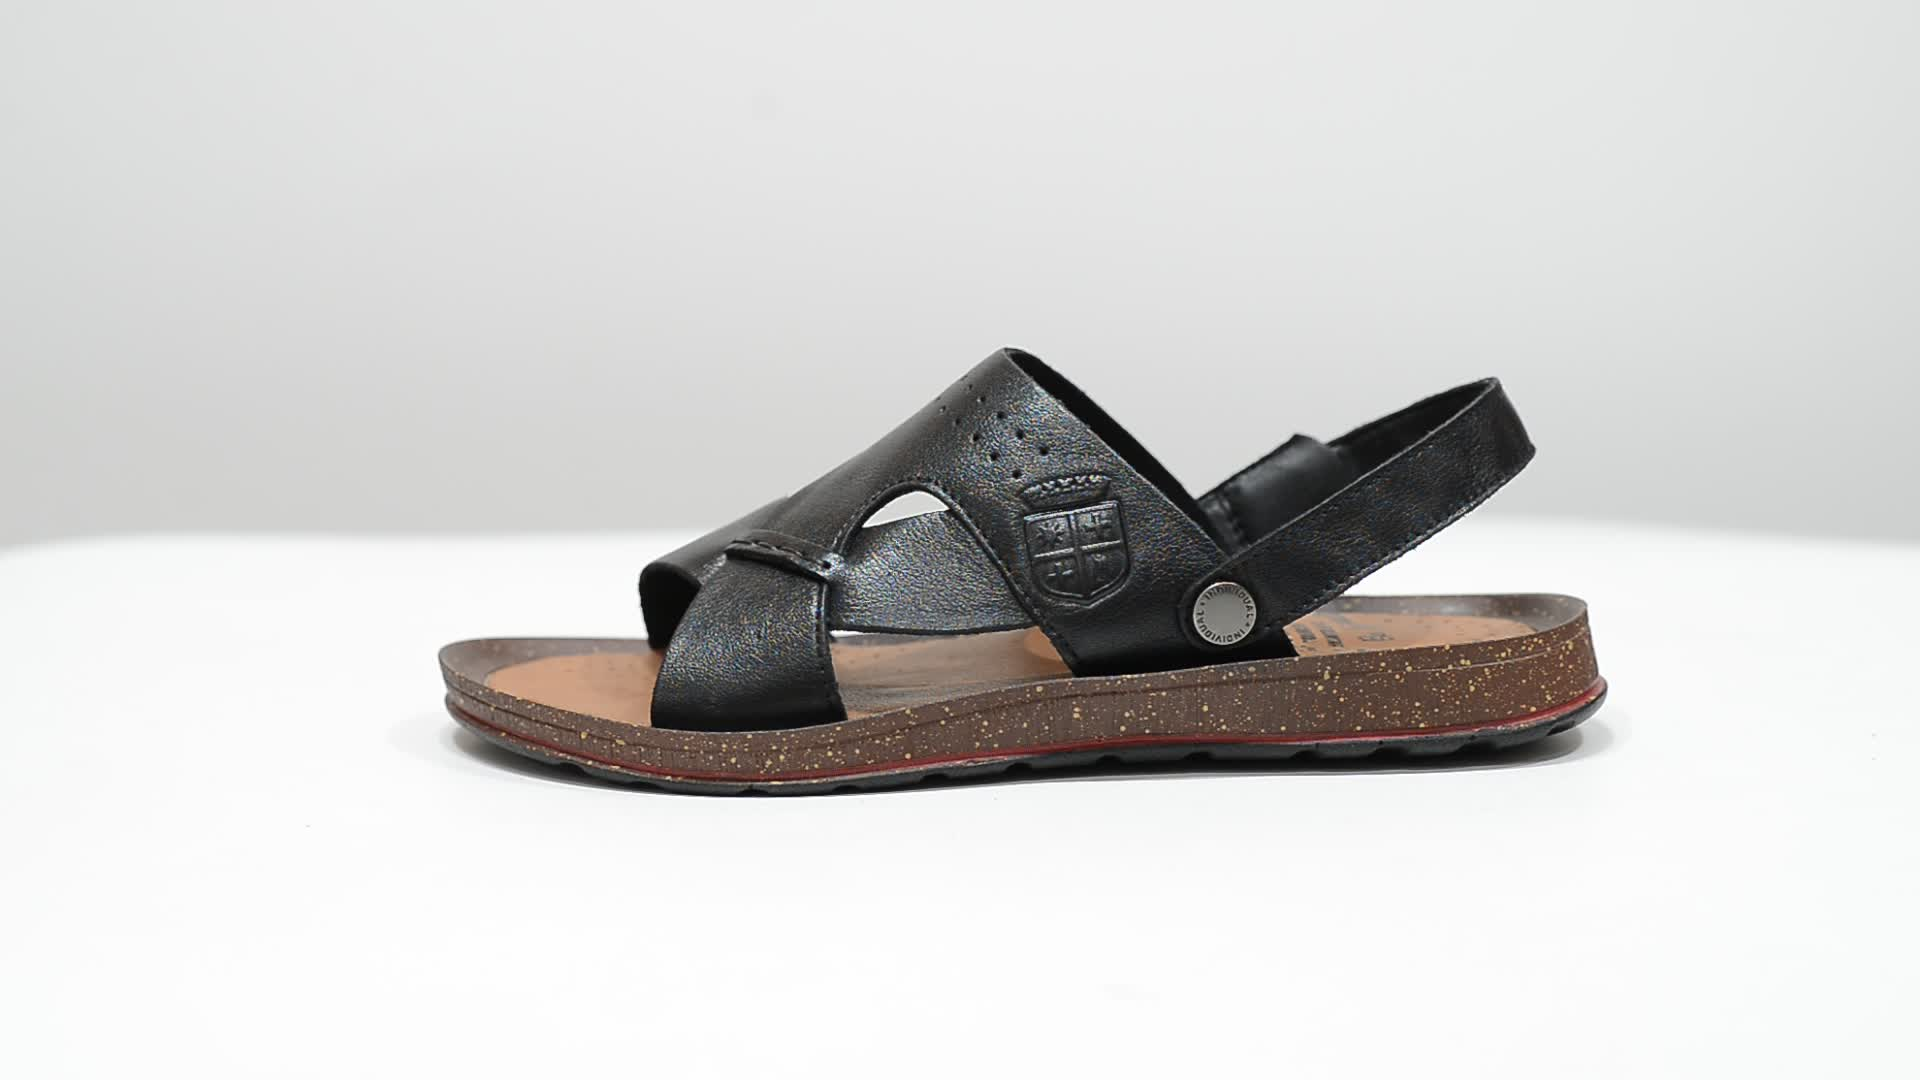 High quality mens genuine leather sandals, L991 chp